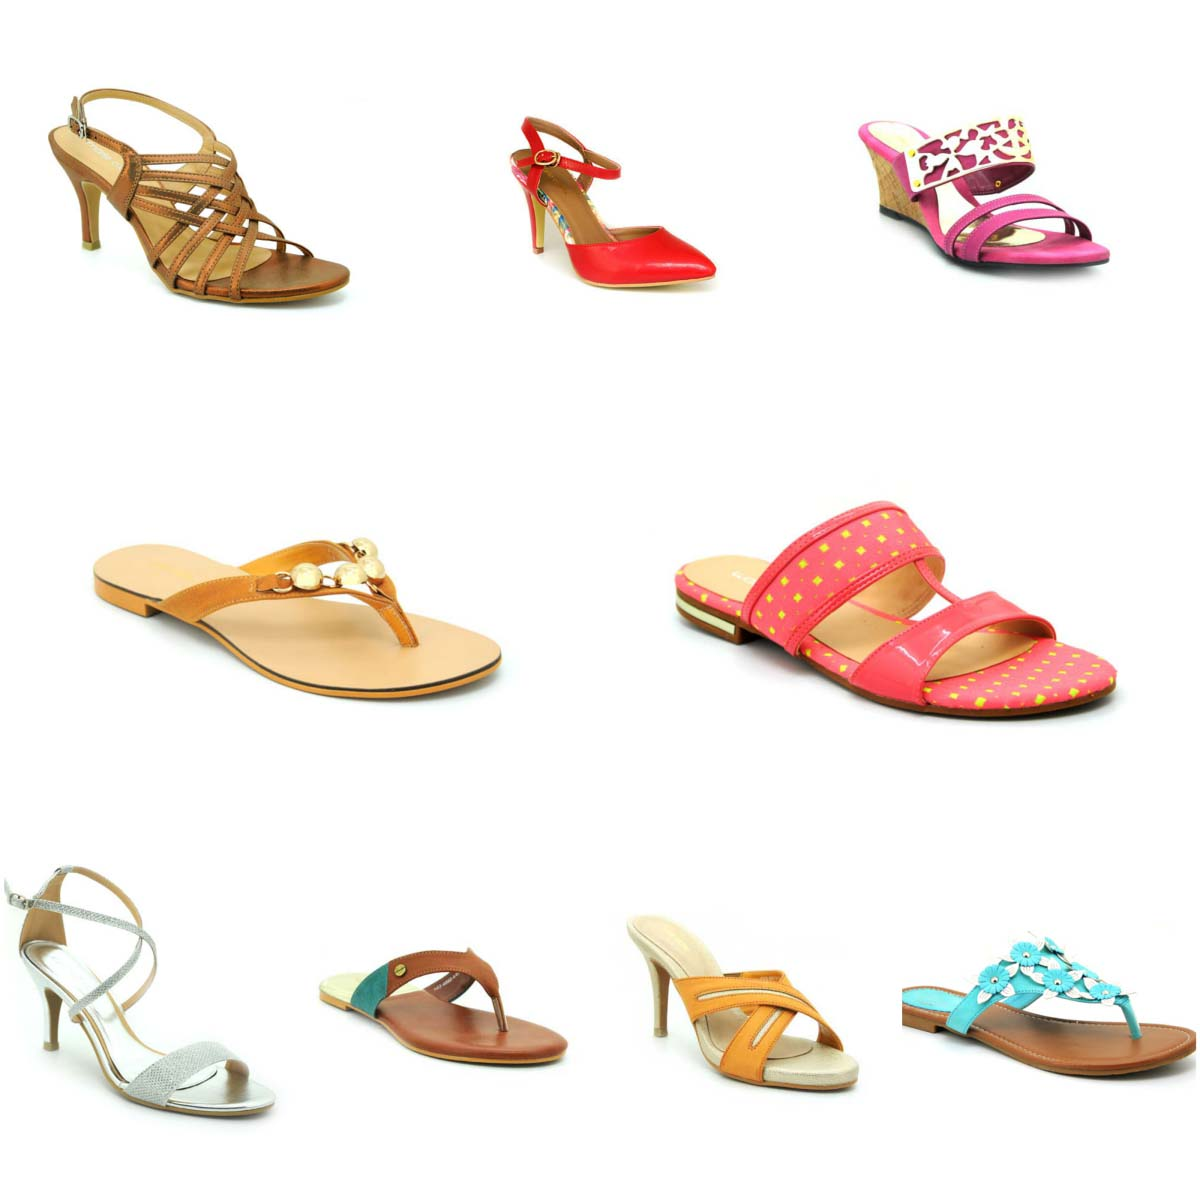 Unique Bata Eid Ul Adha Midsummer Shoes Designs 2016 Latest Outlines Of Footwear From Bata Underneath Bata Has Introduced A Wide Range Of Footwear For Fashion Ladies In There Are Most Recent Women Shoes Eid Ul Adha 2016 Suits